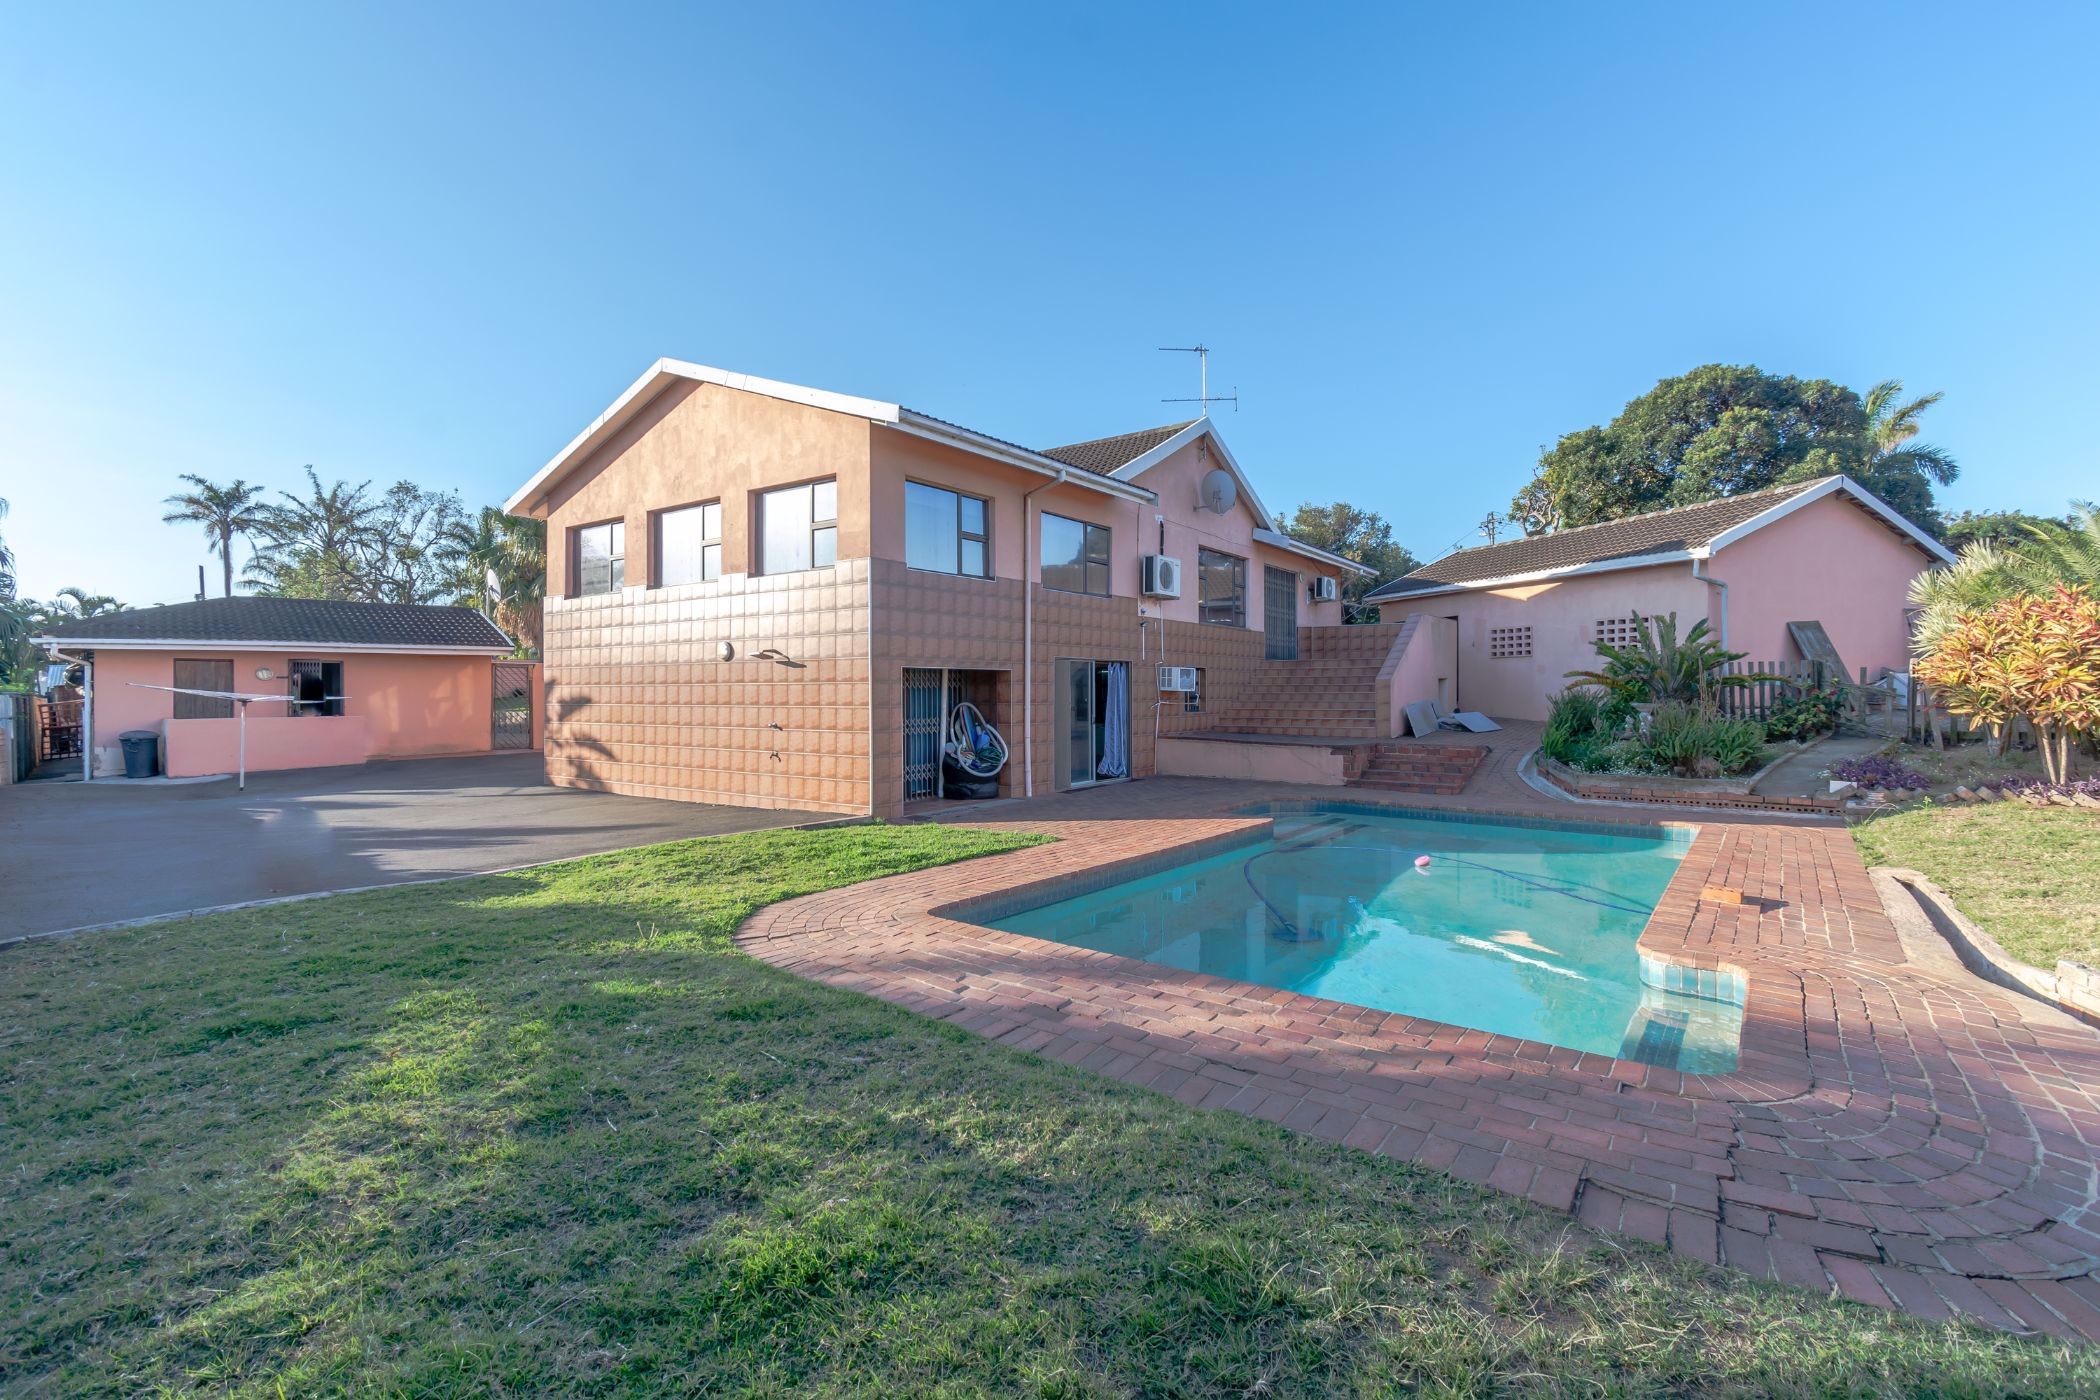 4 bedroom townhouse for sale in Riverside (Durban North)